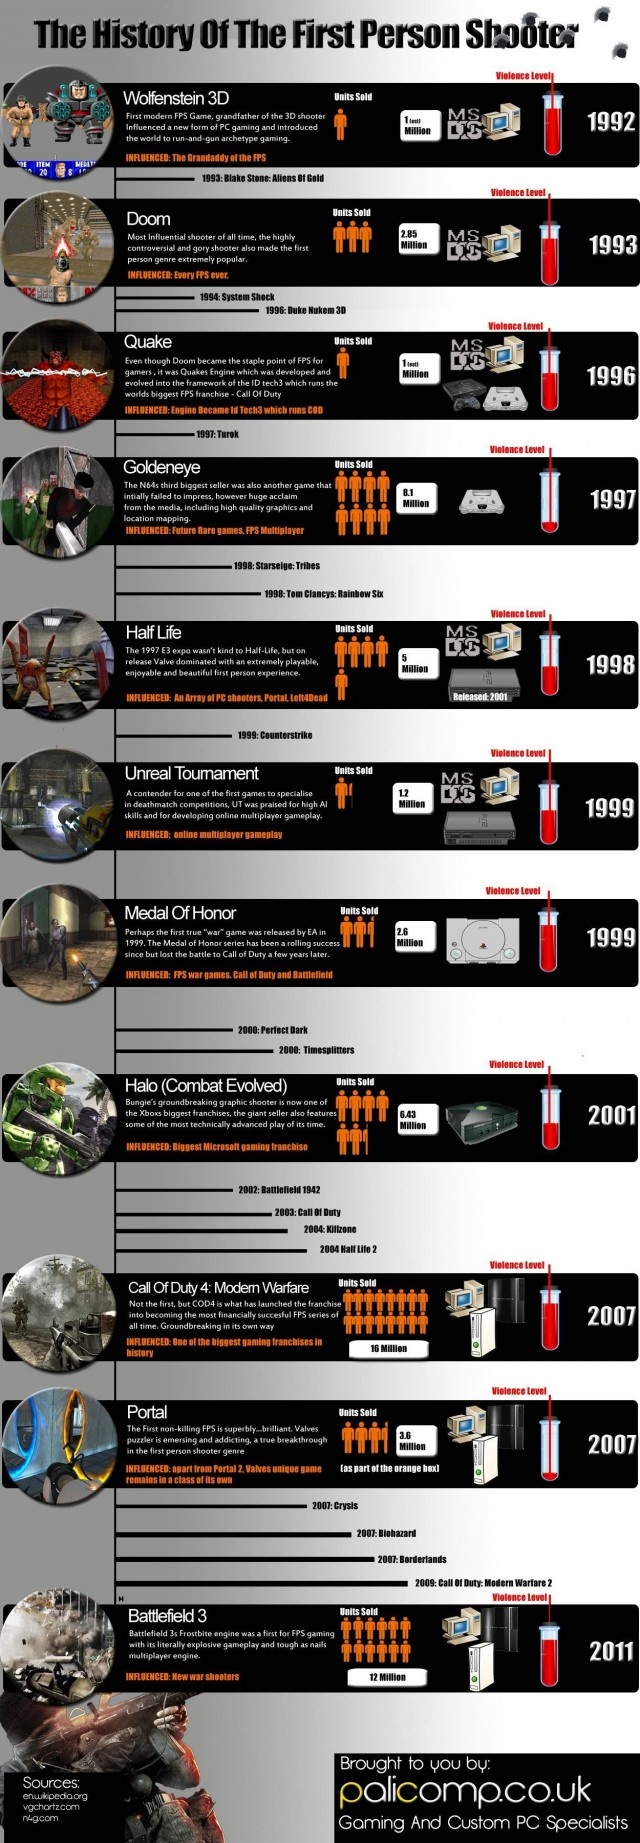 The history of the First Person Shooter